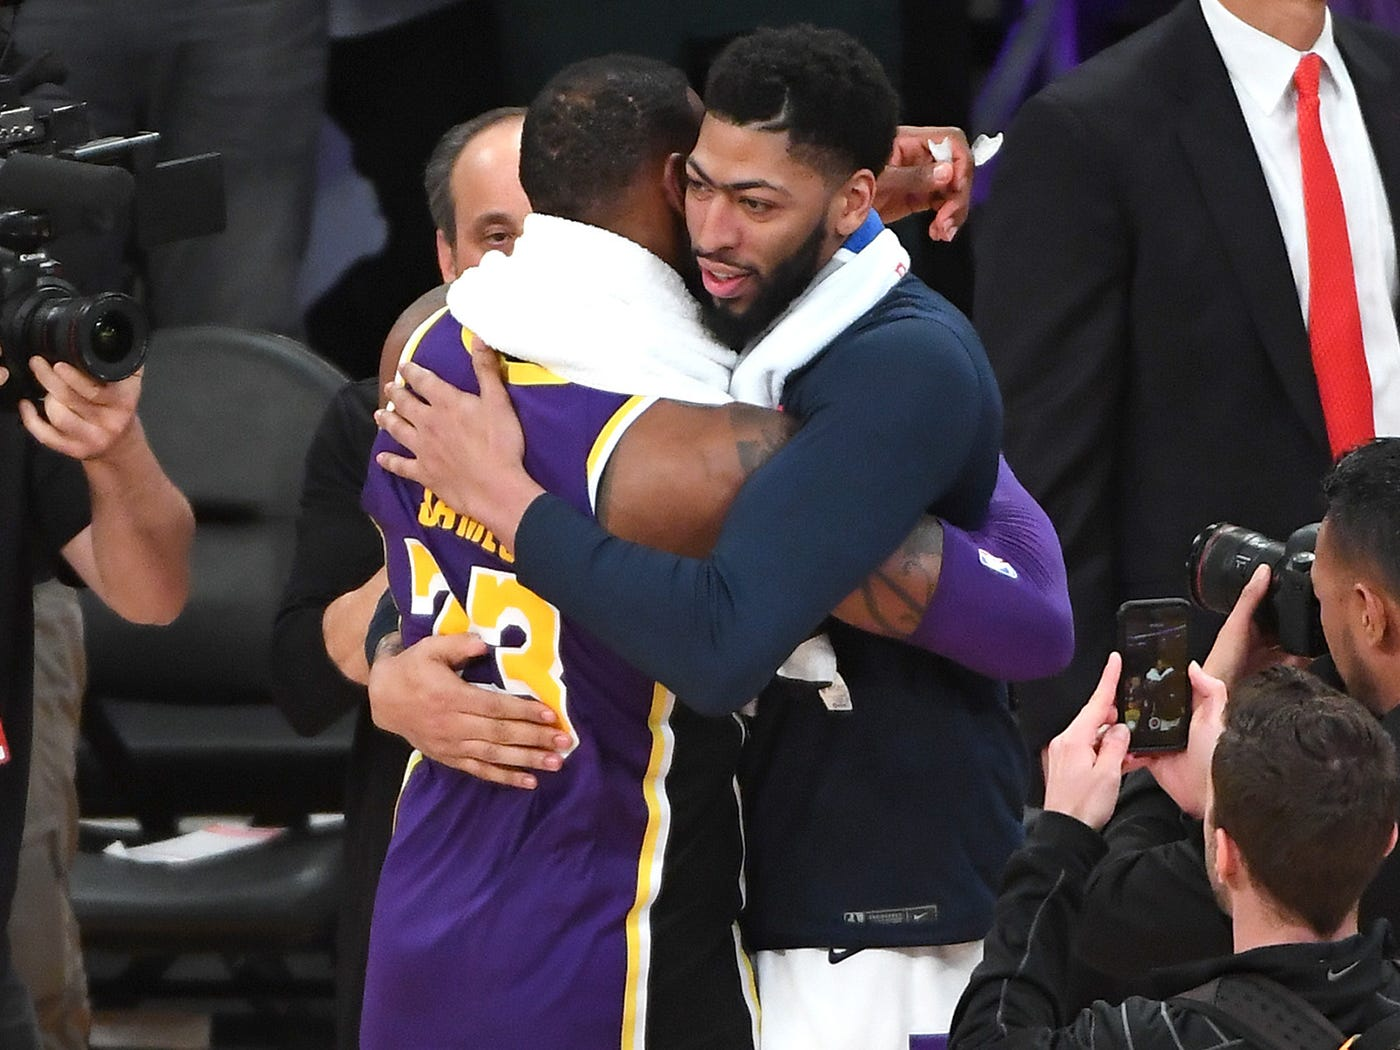 Feb. 27, 2019: James shares a hug with Pelicans star Anthony Davis after a game in Los Angeles.